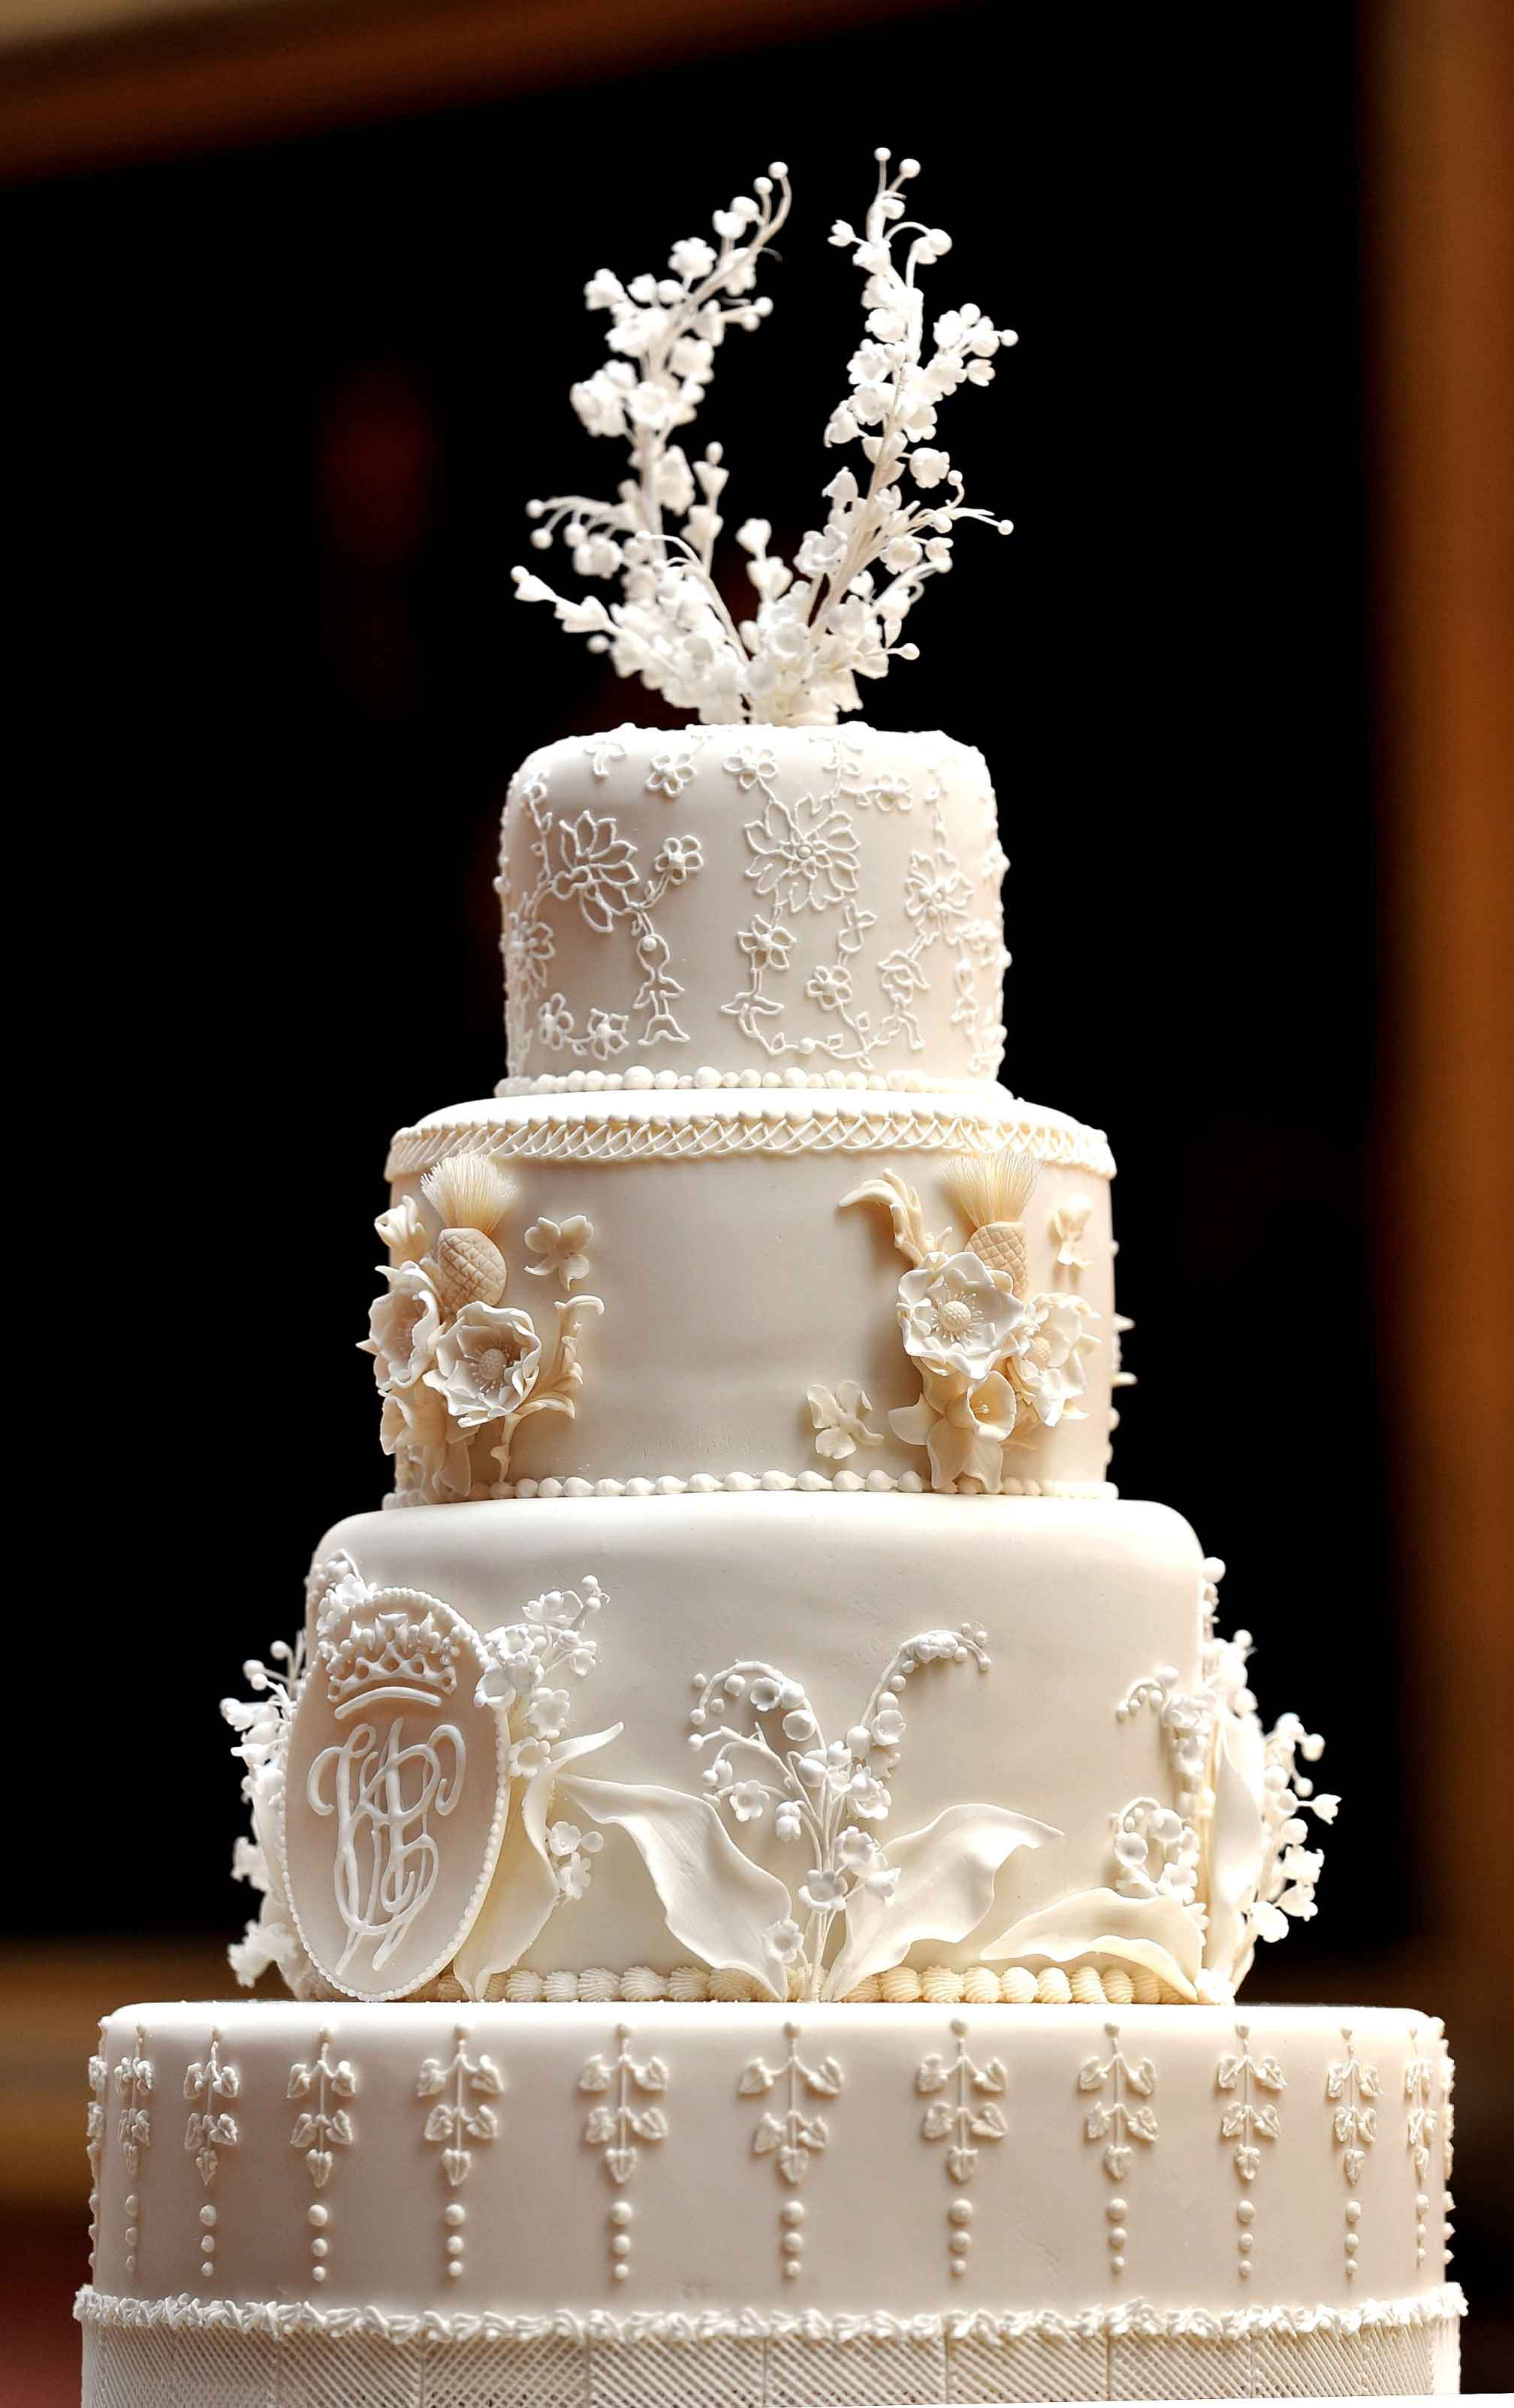 The most expensive wedding cakes … ever